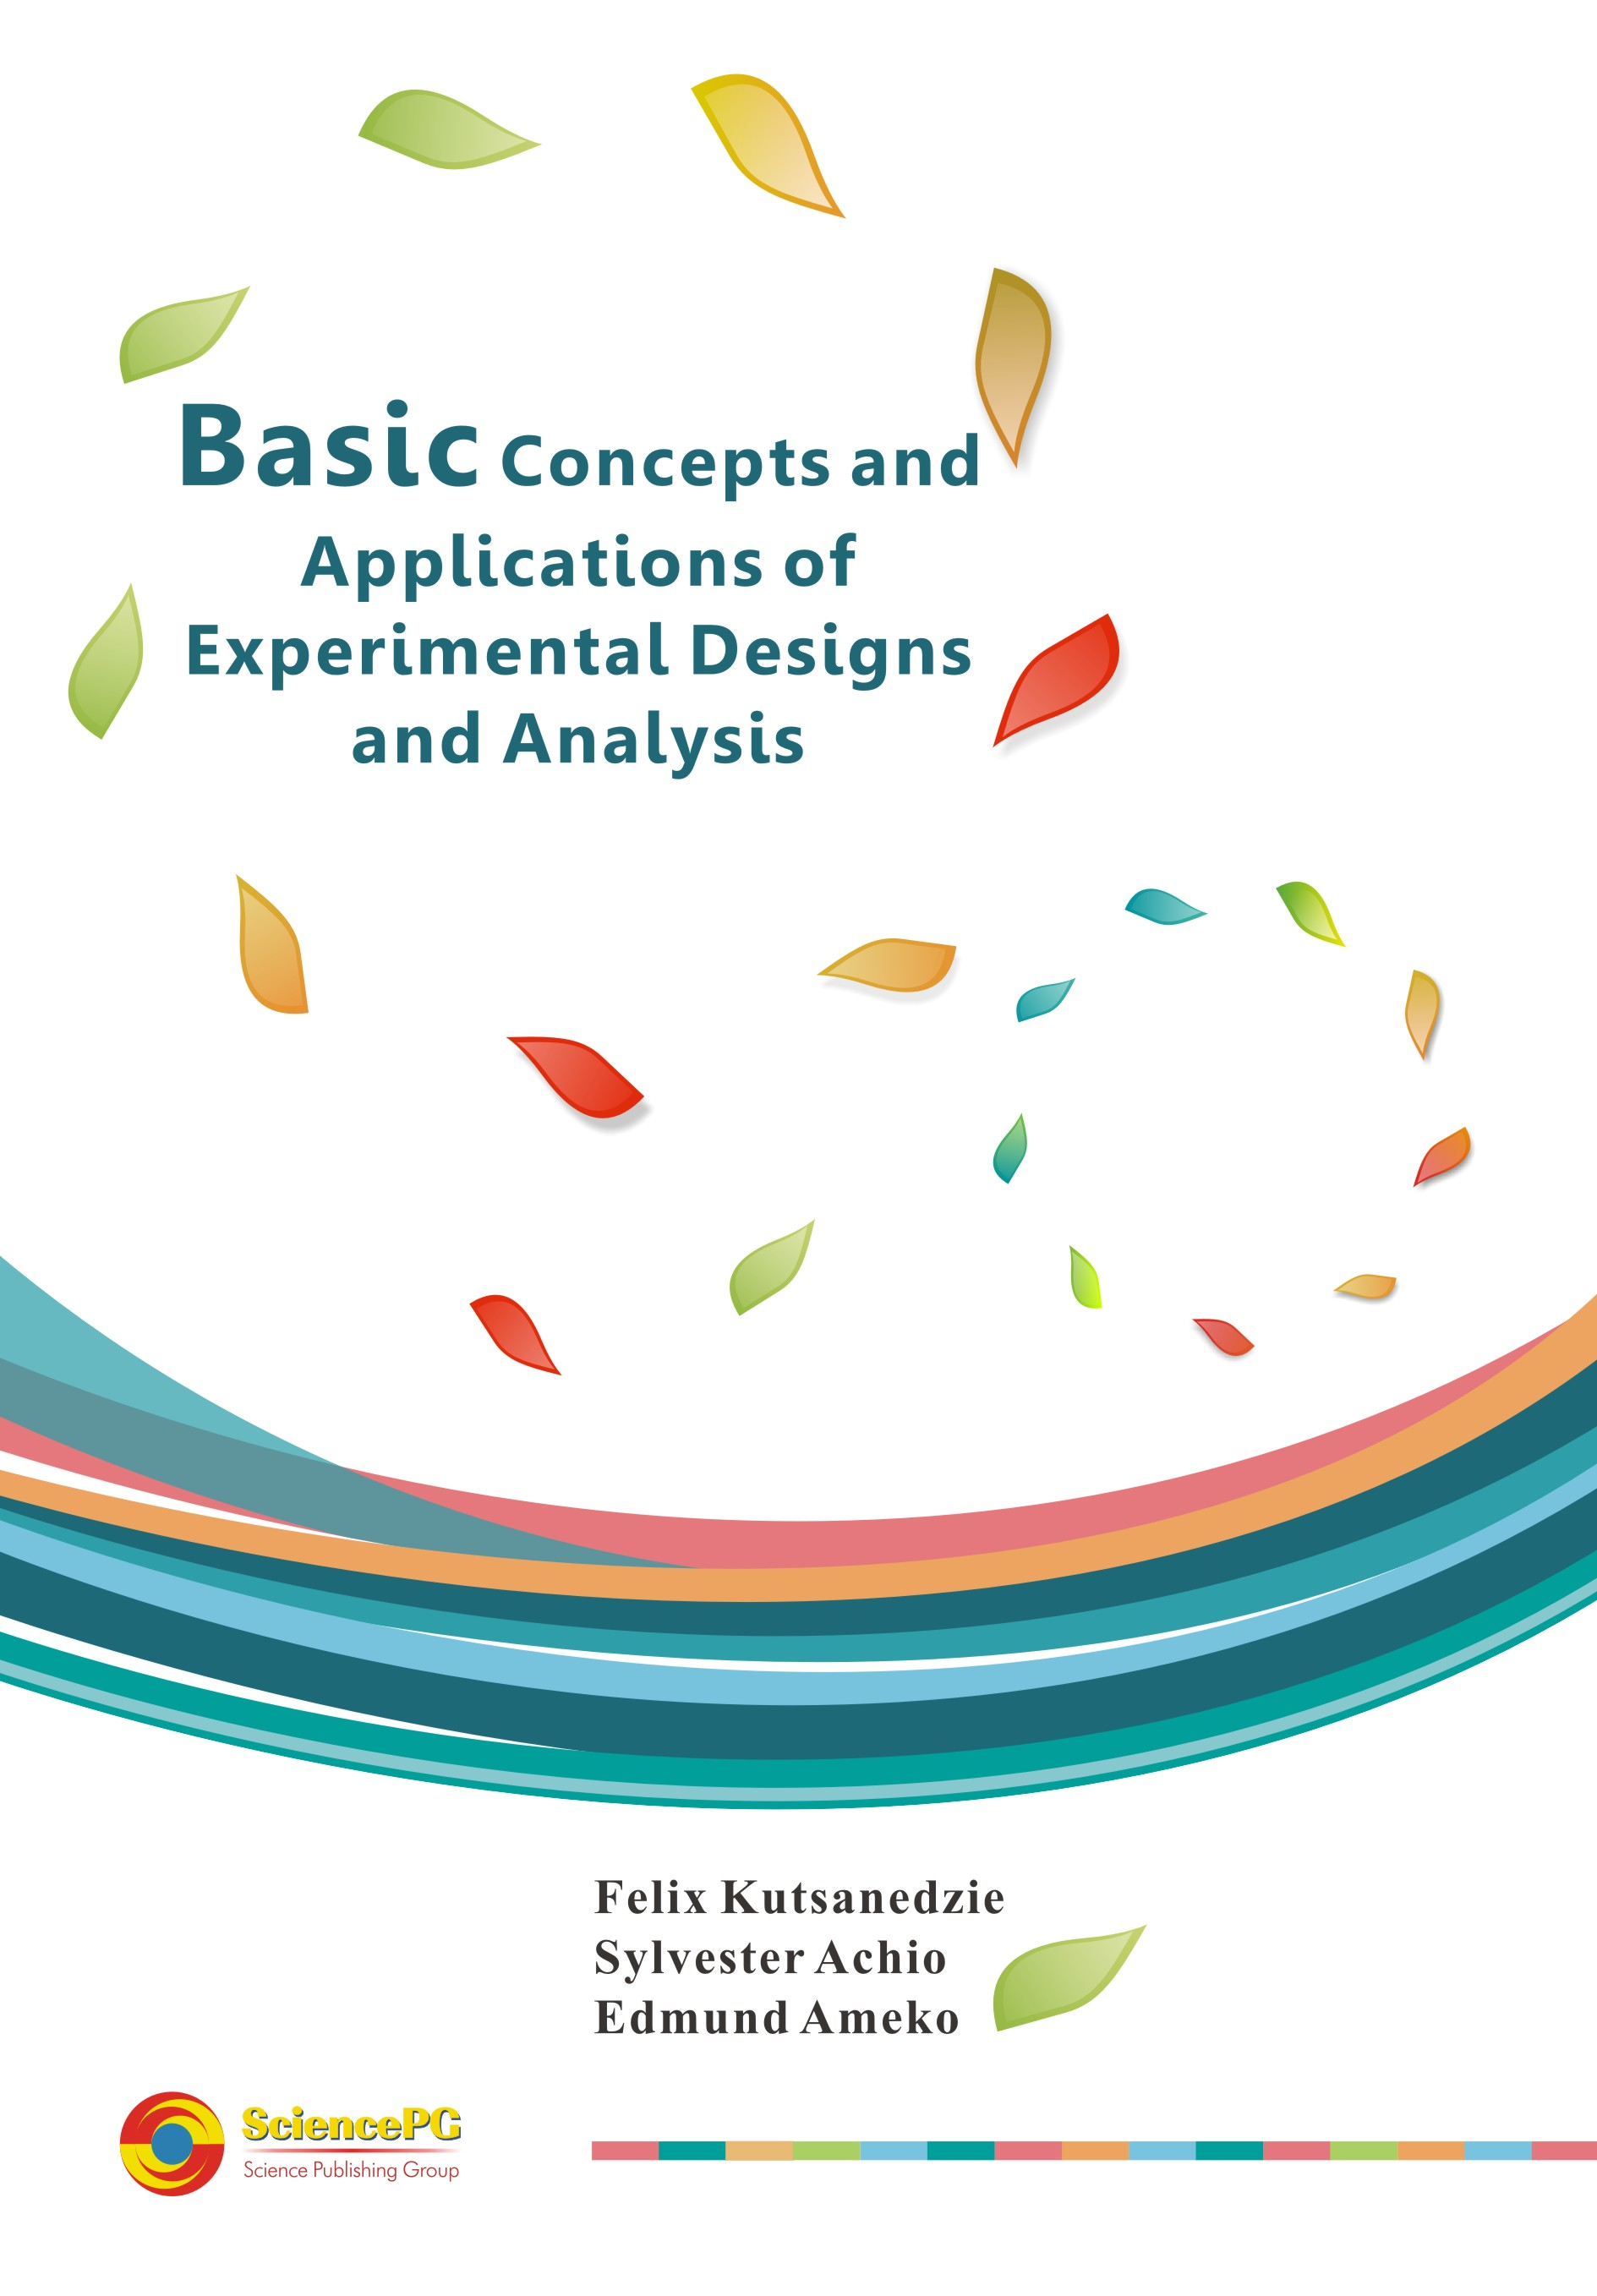 Basic Concepts and Applications of Experimental Designs and Analysis